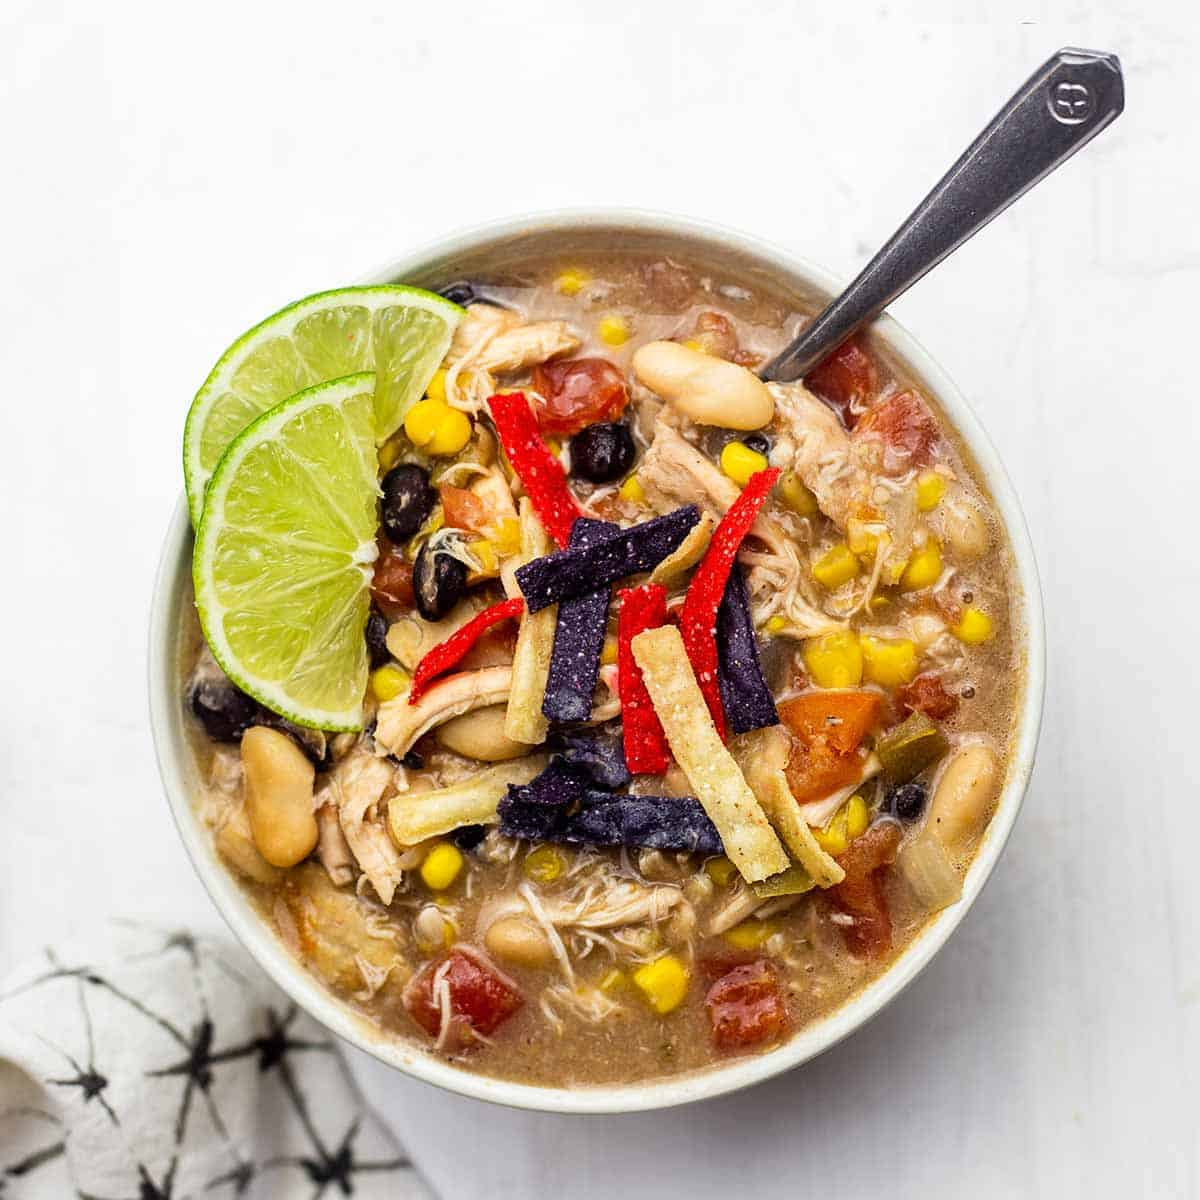 A single bowl of chick-fil-a chicken tortilla soup with a spoon